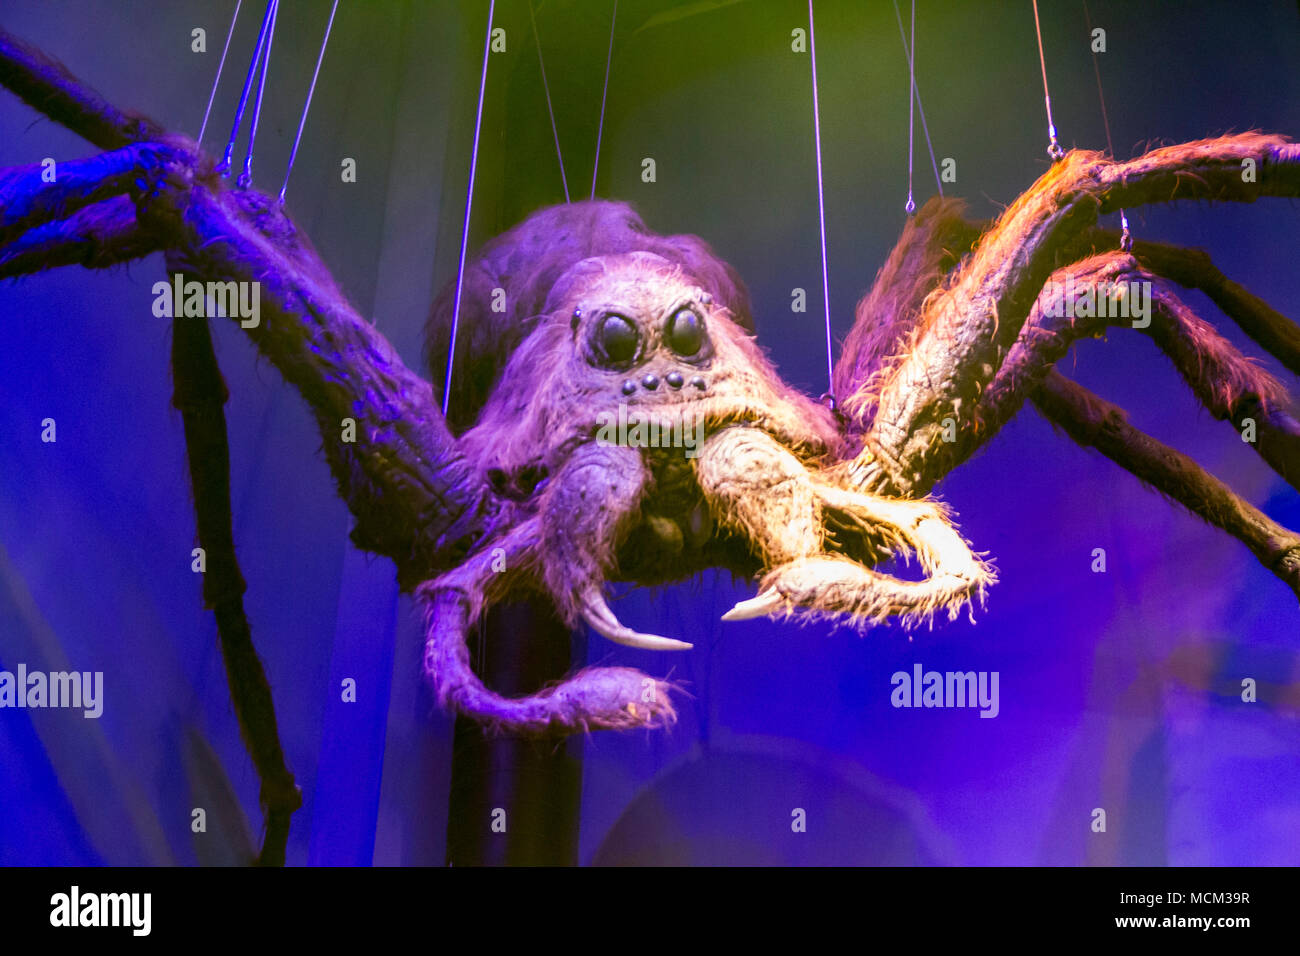 Aragog Giant Spider Harry Potter High Resolution Stock Photography And Images Alamy